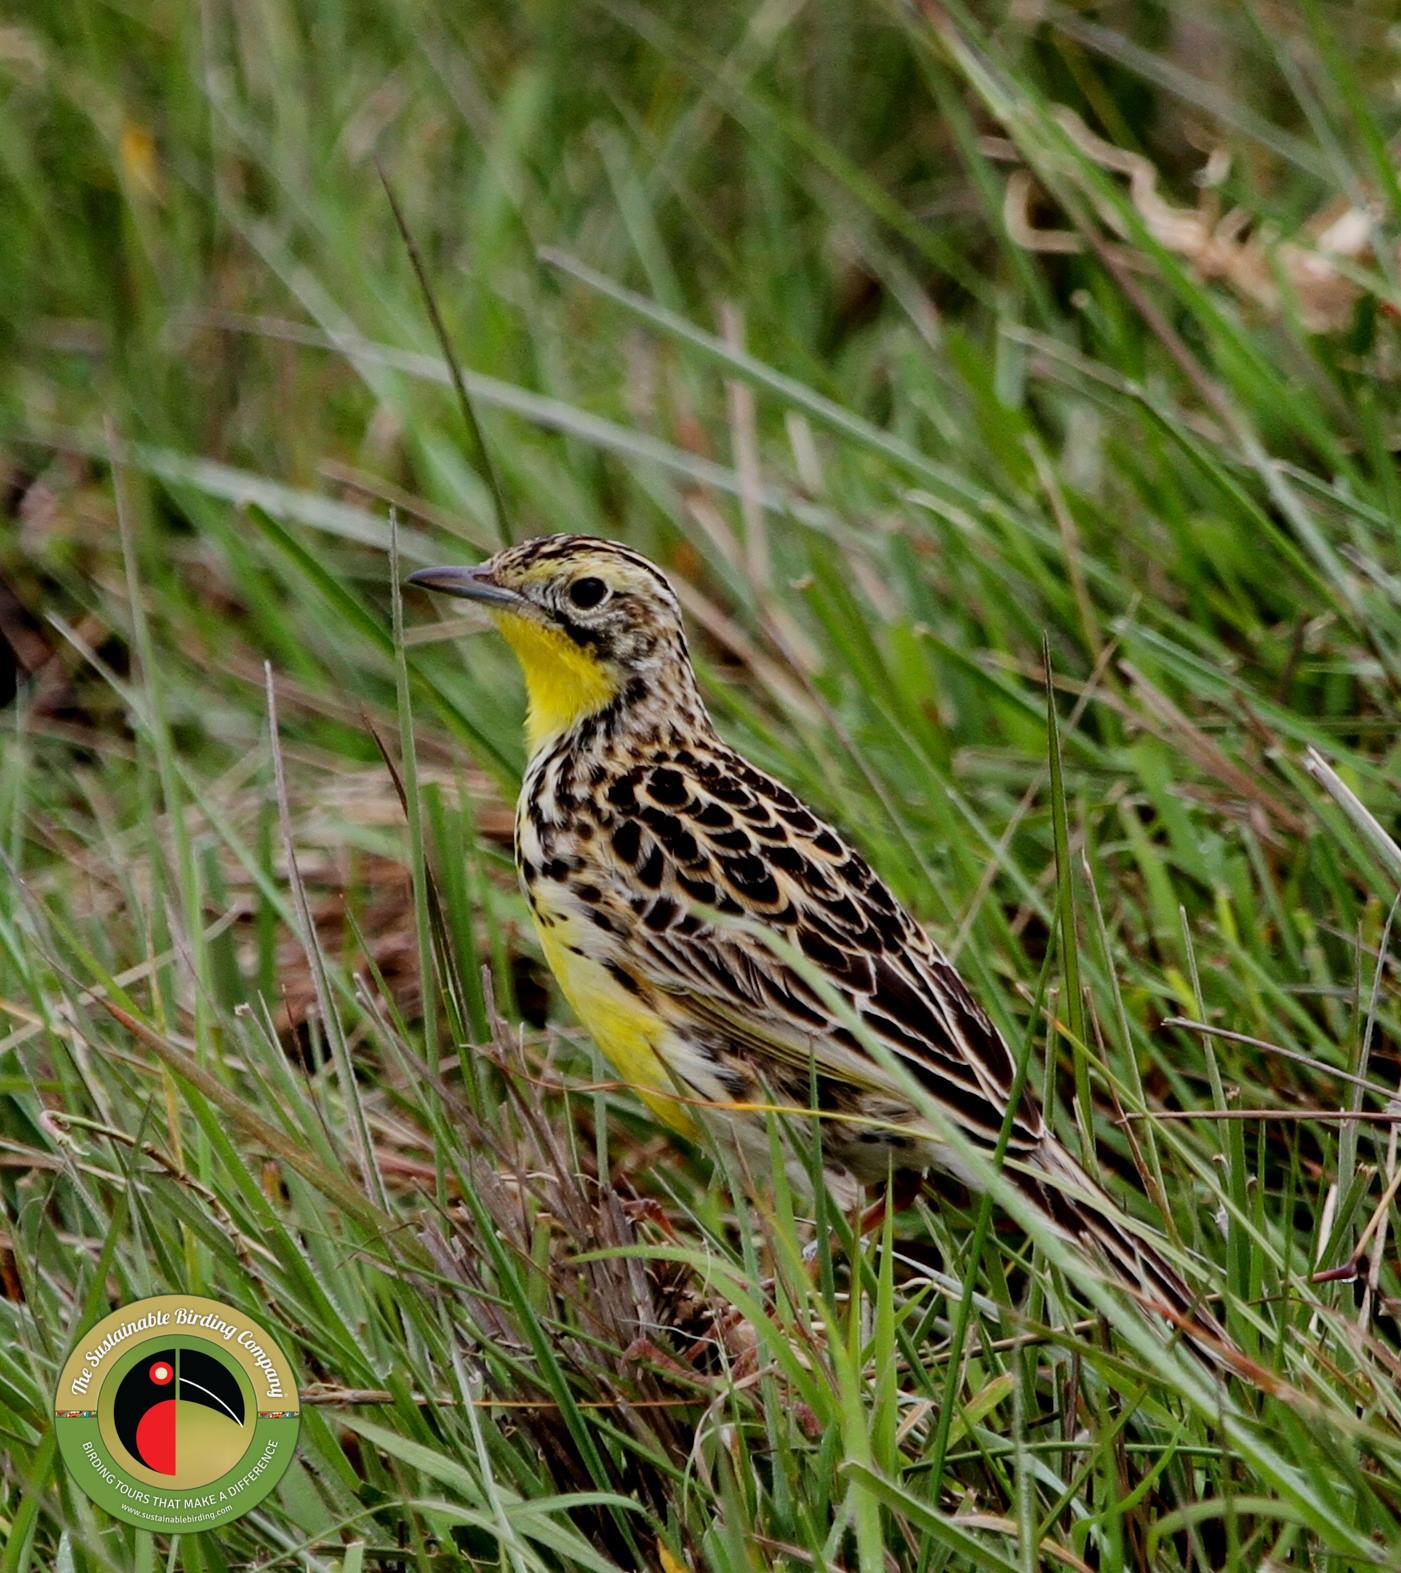 Kenya endemic the Sharpe's Longclaw, found on our Kenya Birding Tours